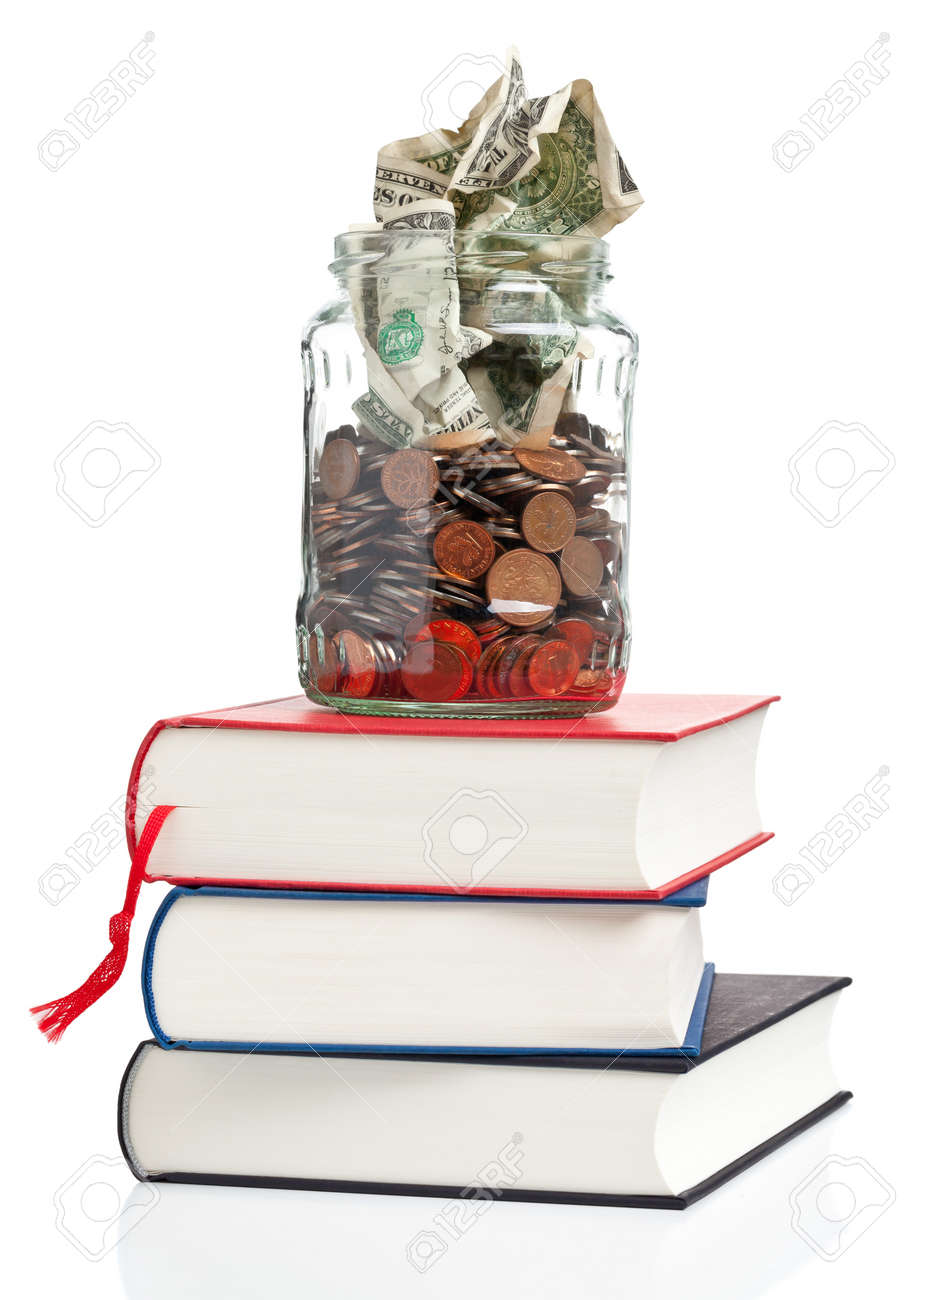 Books with penny jar filled with coins and banknotes - tuition or education financing concept Standard-Bild - 18586916